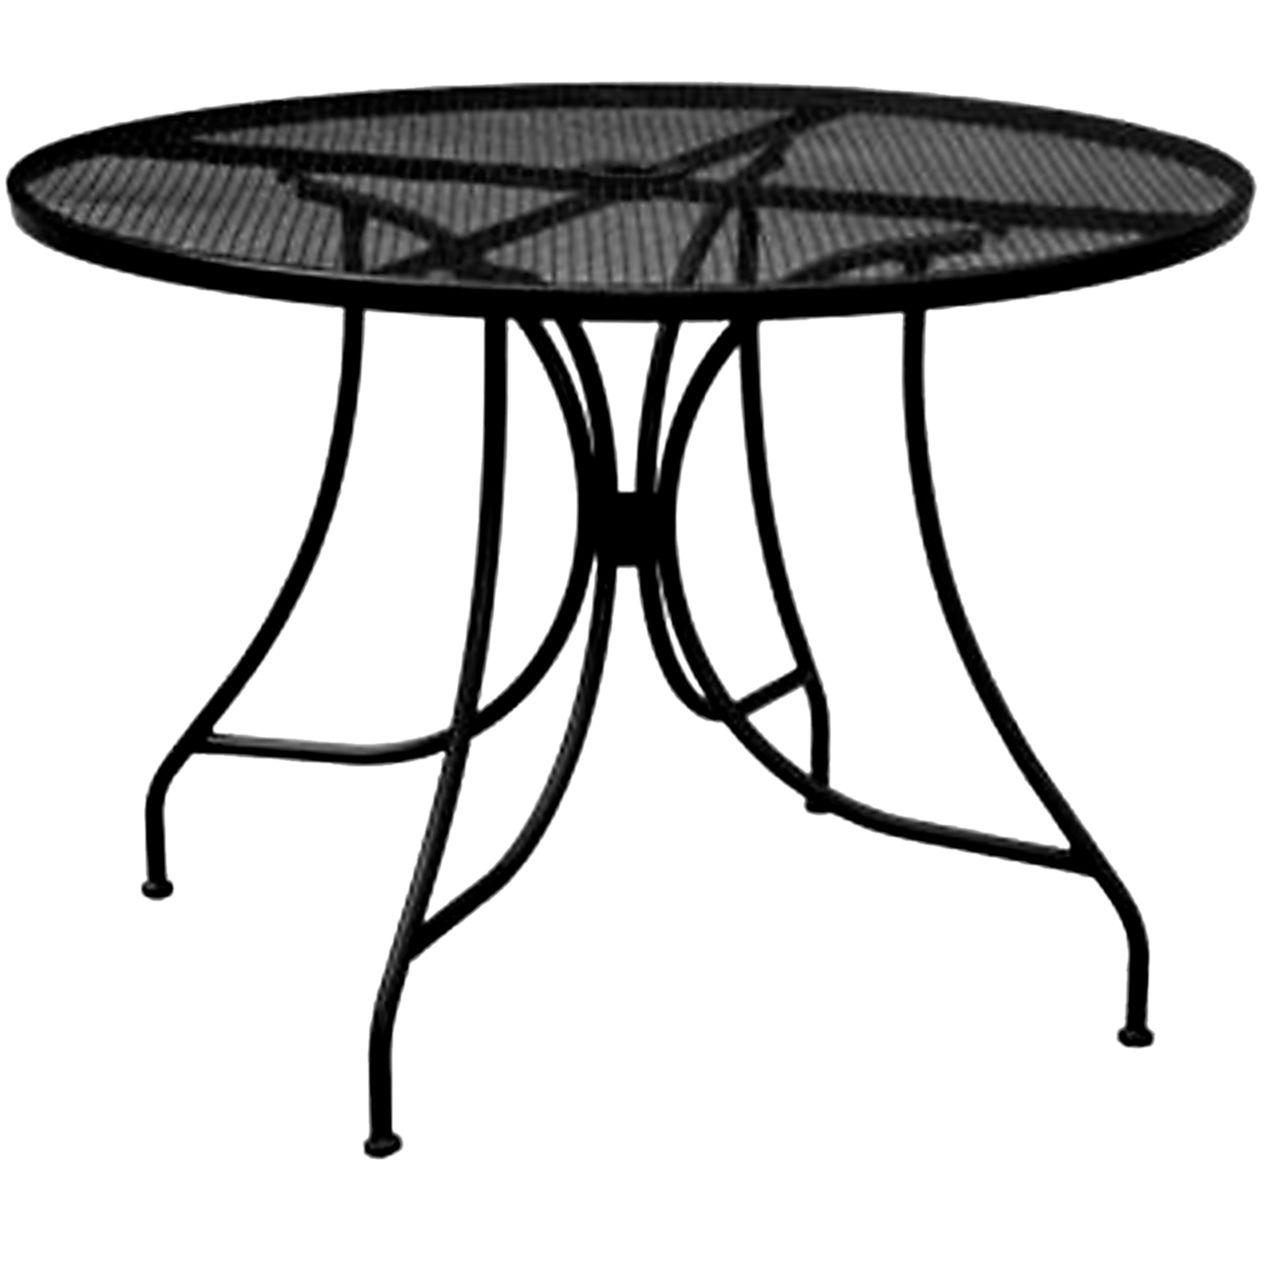 black wrought iron round table home patio accent small coffee designs cherry end bistro theater furniture antique side with shelf nautical lamp shades retro designer corner steel